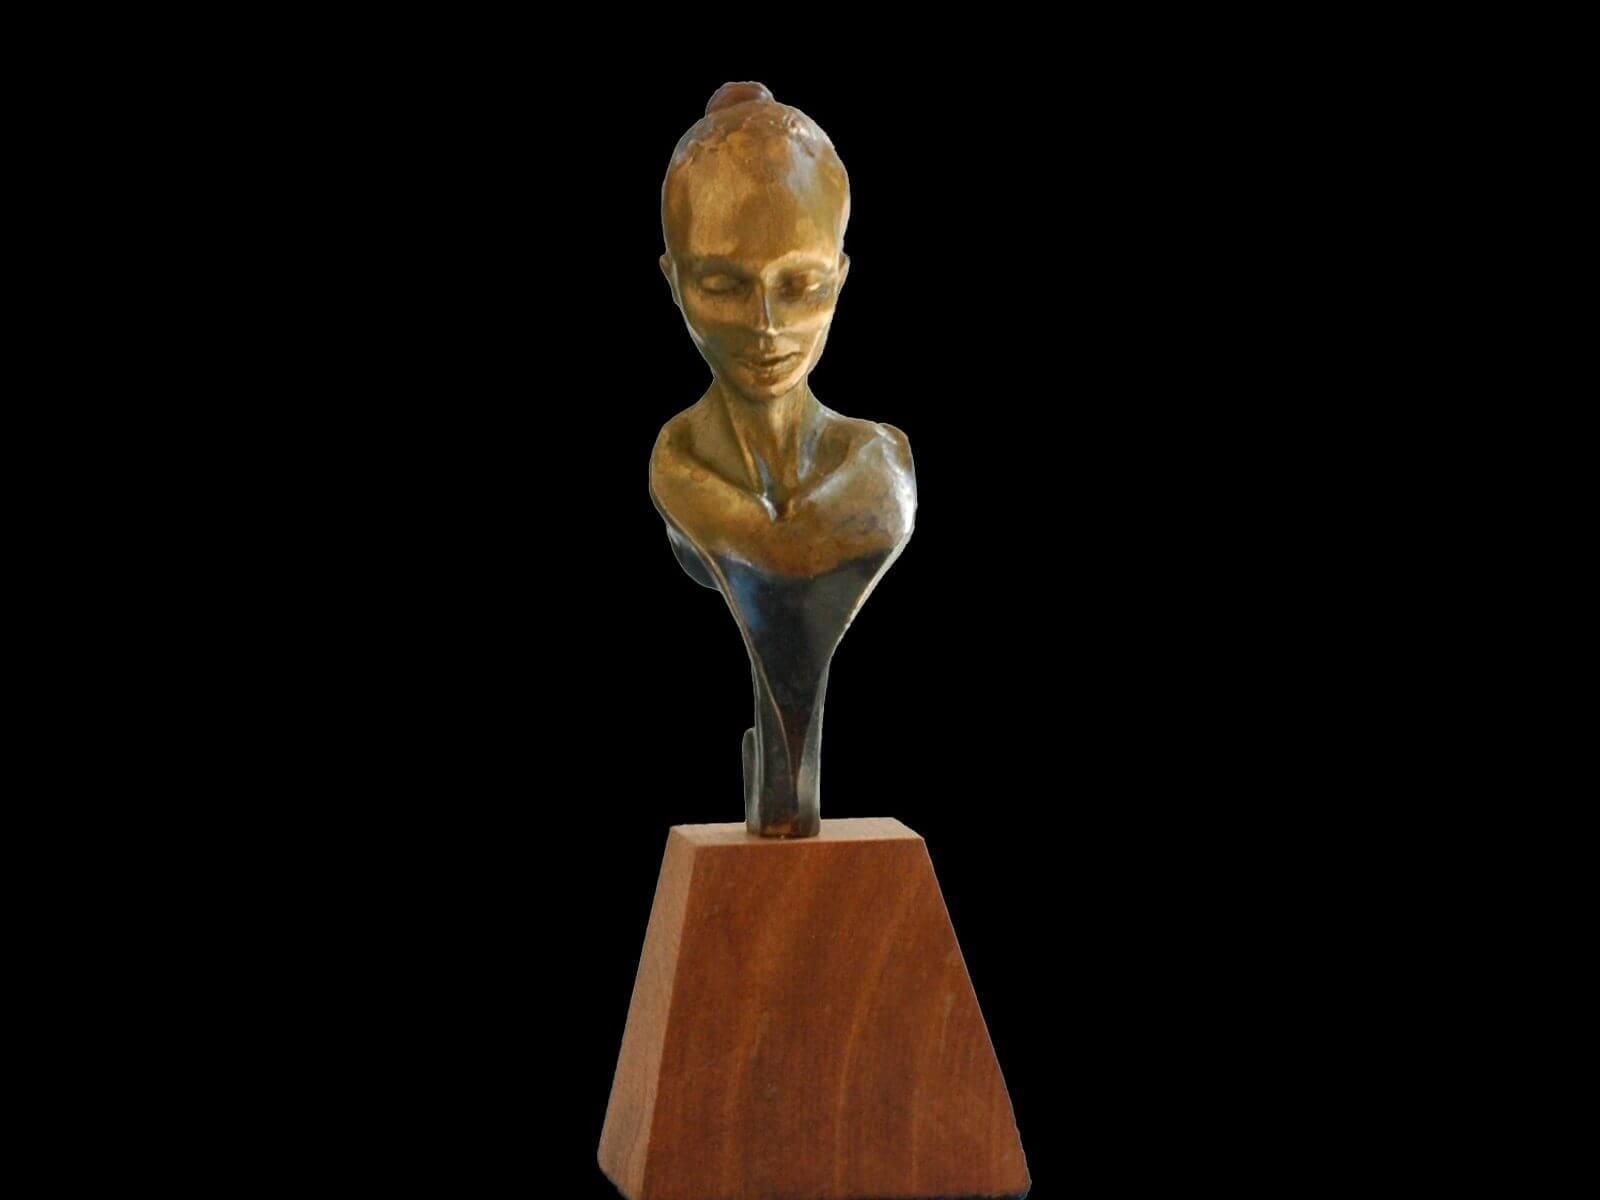 Phoenix Bust a small figurative sculpture by Andrew DeVries